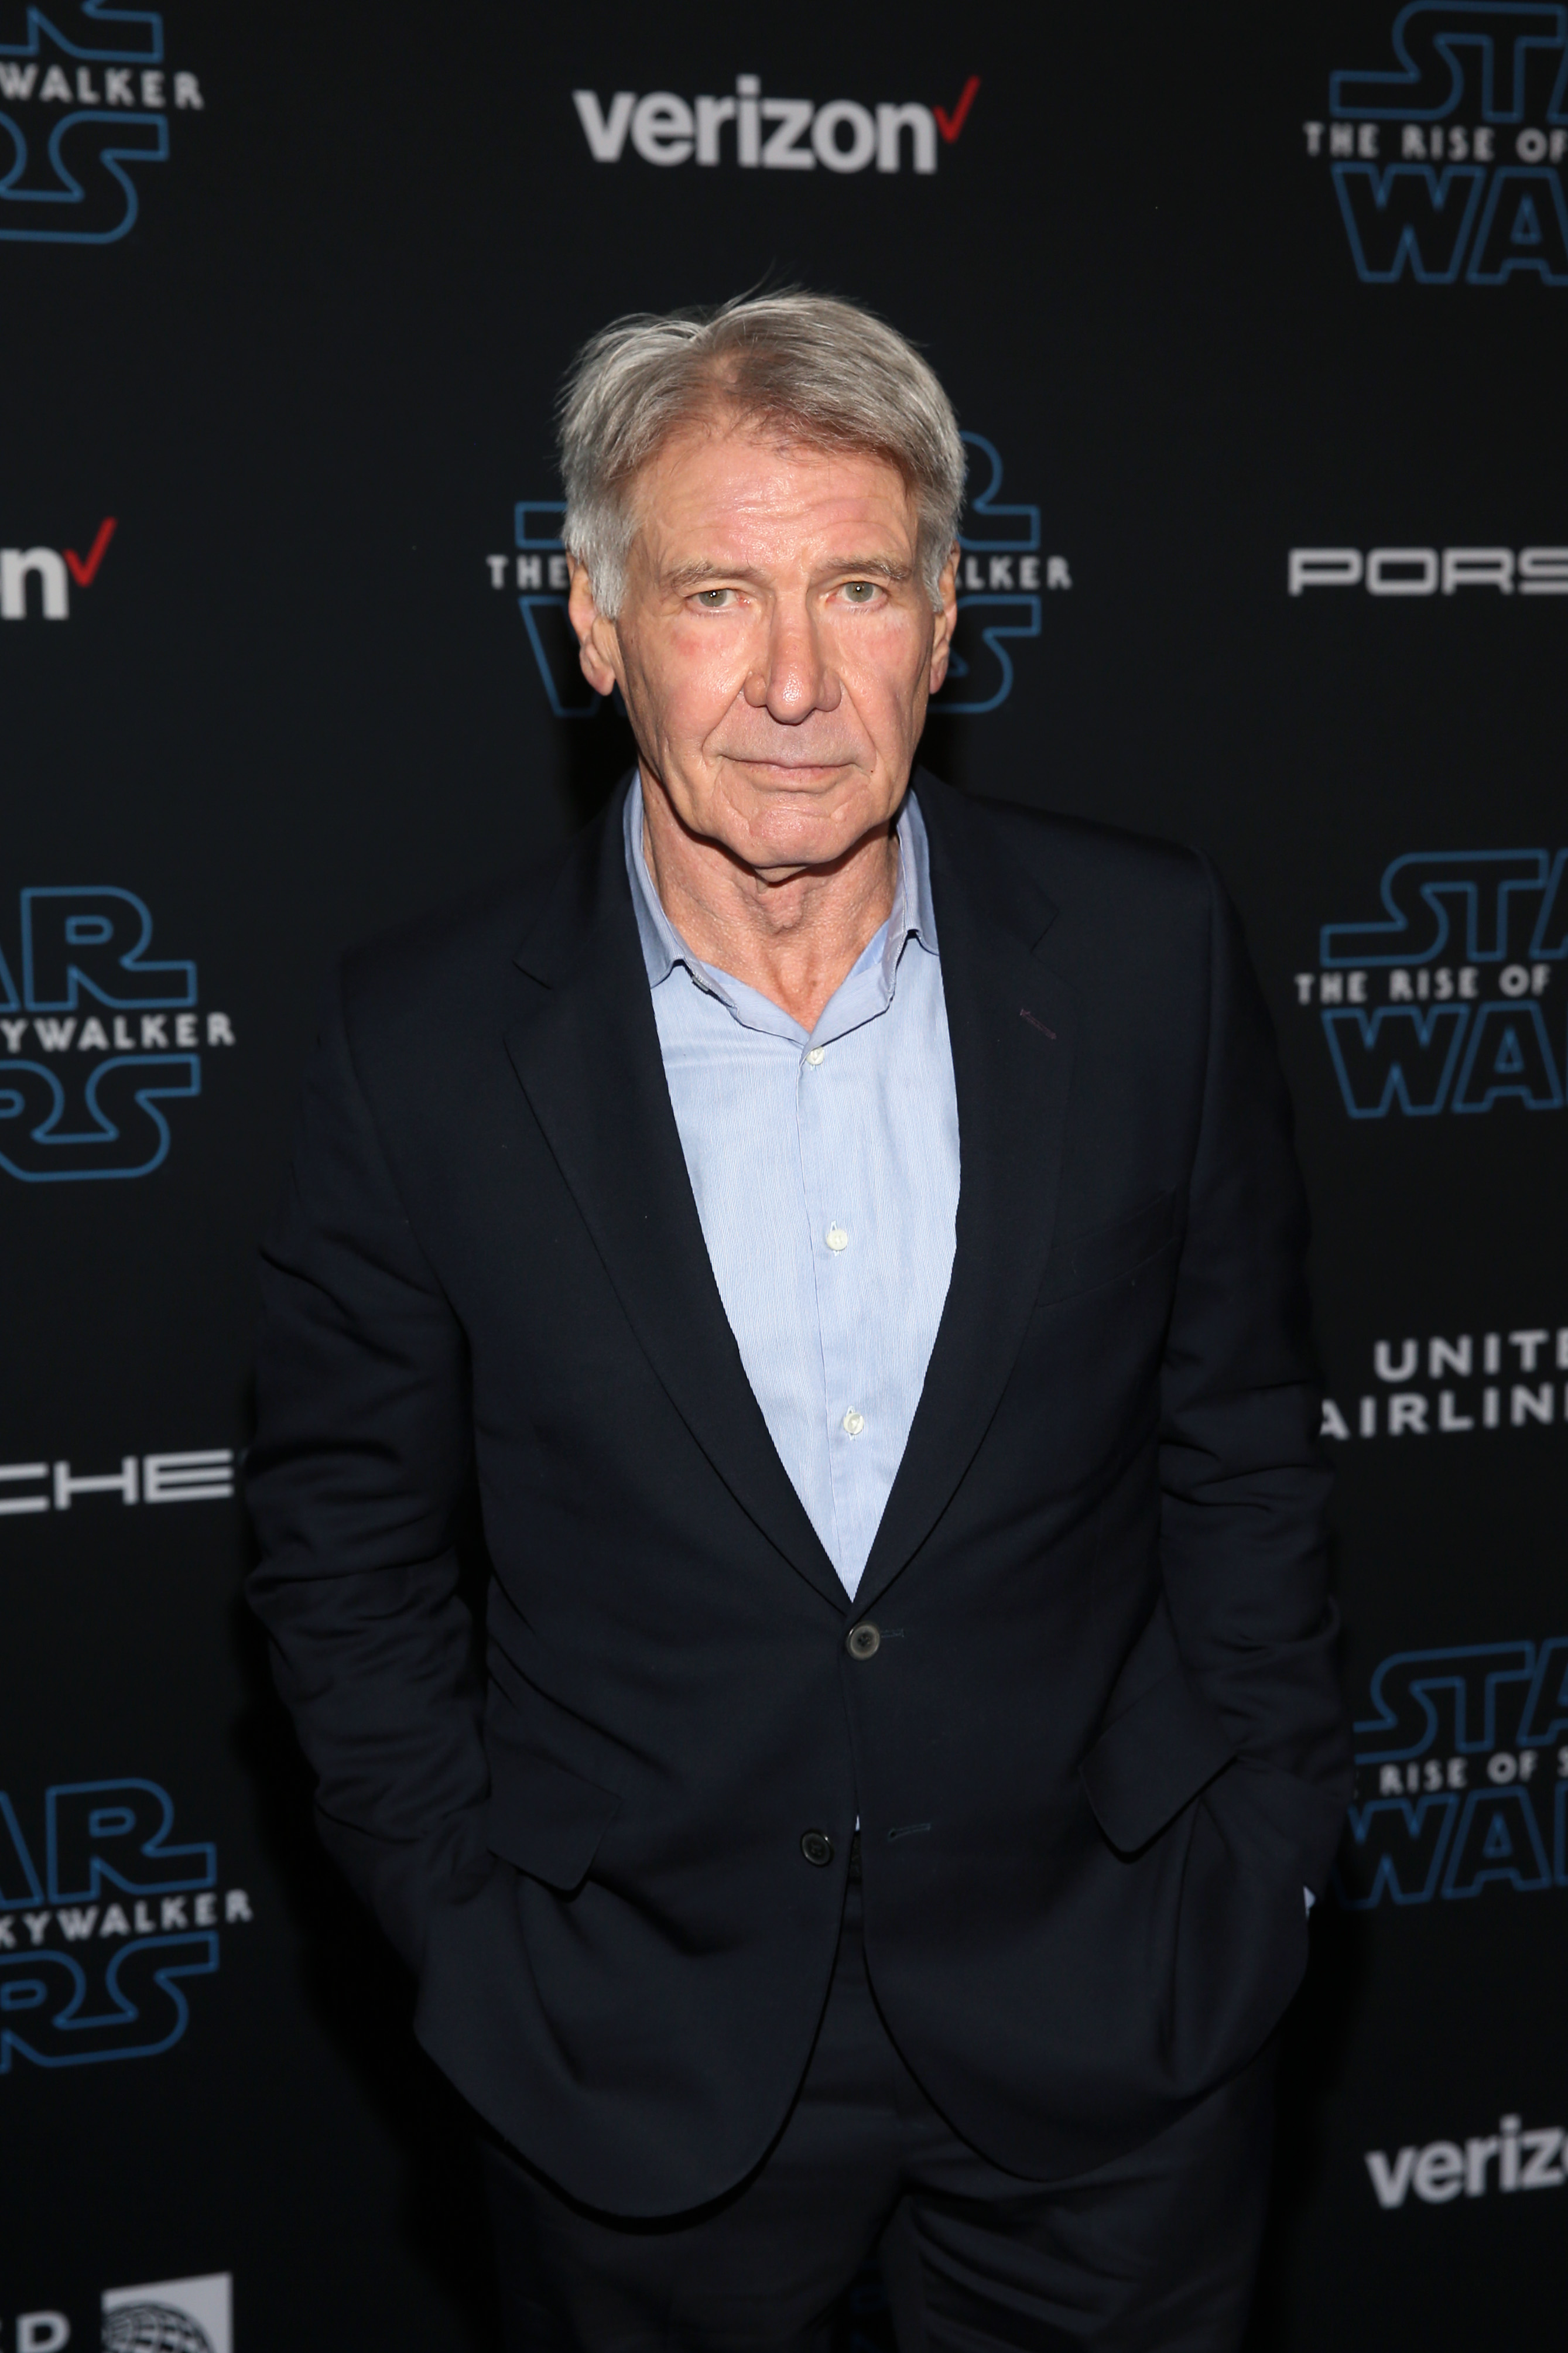 Star Wars The Rise Of Skywalker Here S How Jj Abrams Convinced Harrison Ford To Come Back As Han Solo Pinkvilla